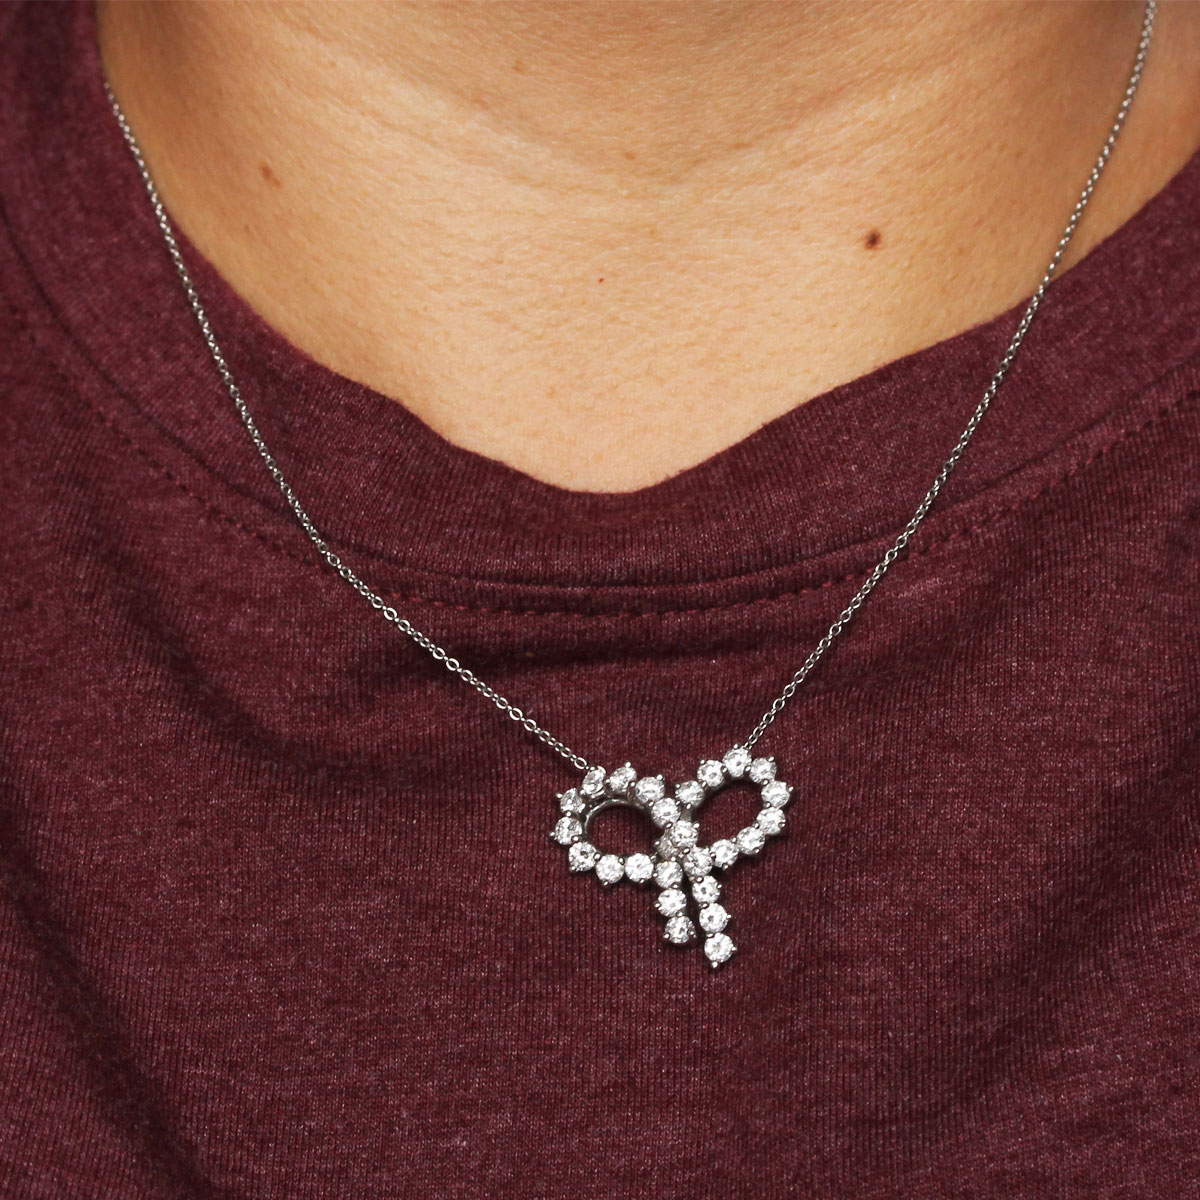 Tiffany & Co. Bow Necklace